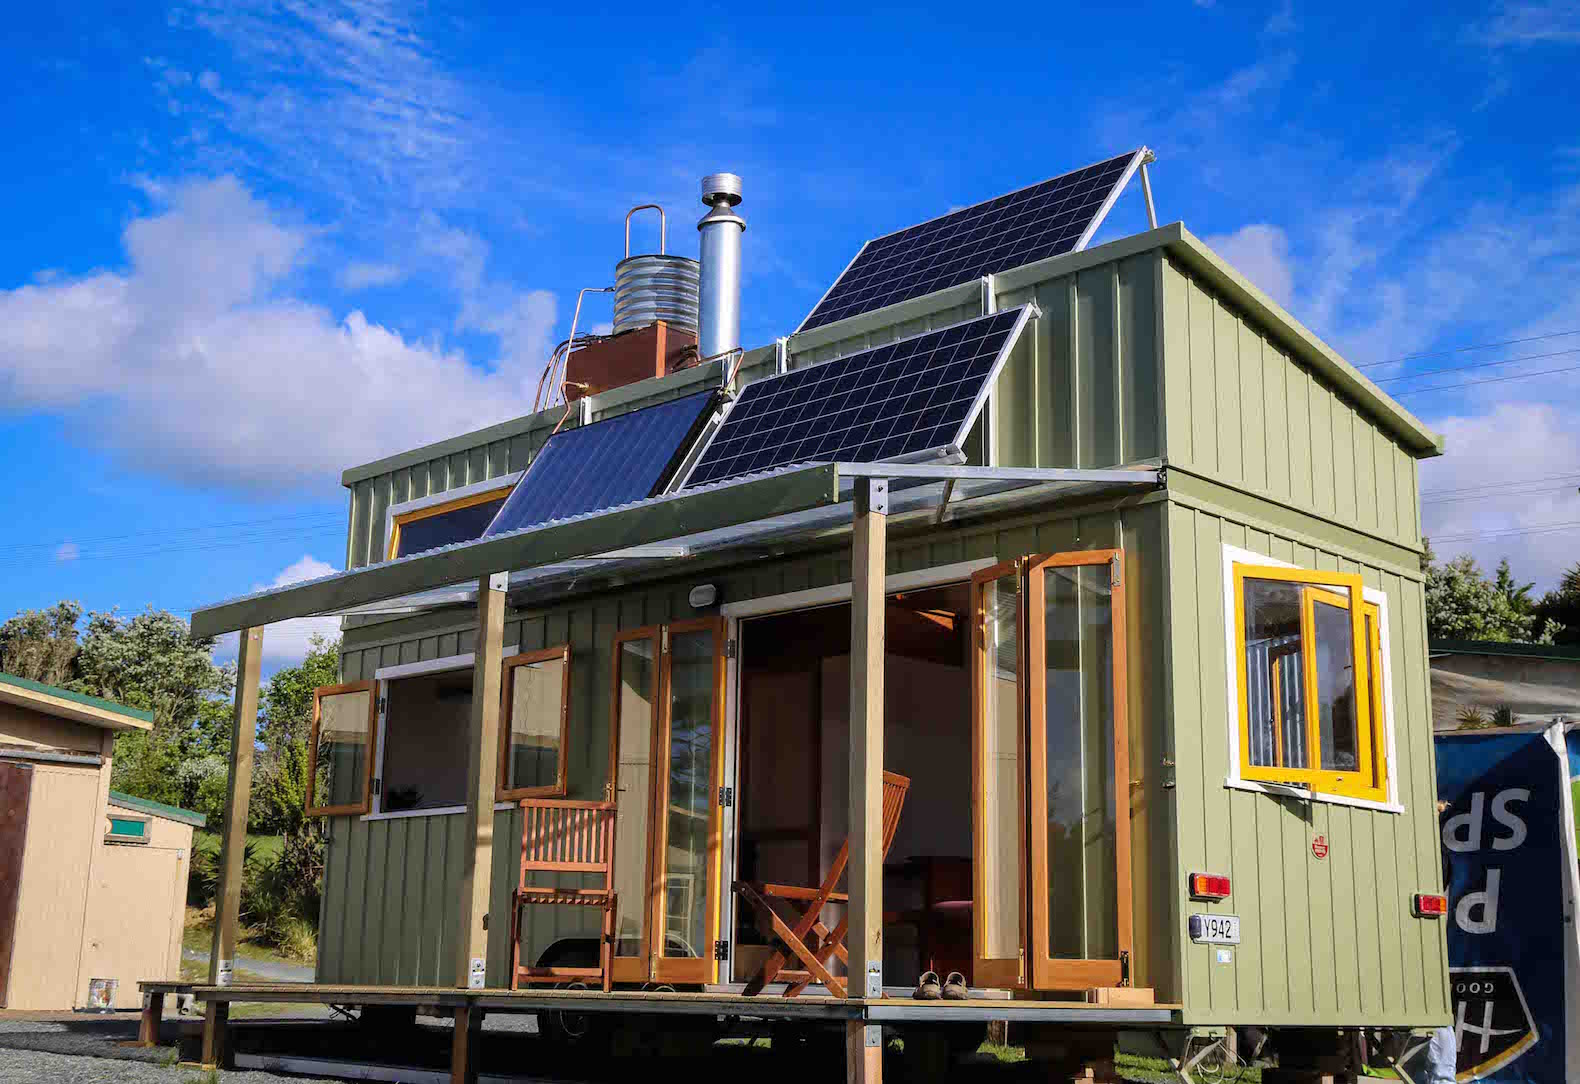 Luxurious Tiny Home In New Zealand Is Off Grid And 100% Self Sustaining